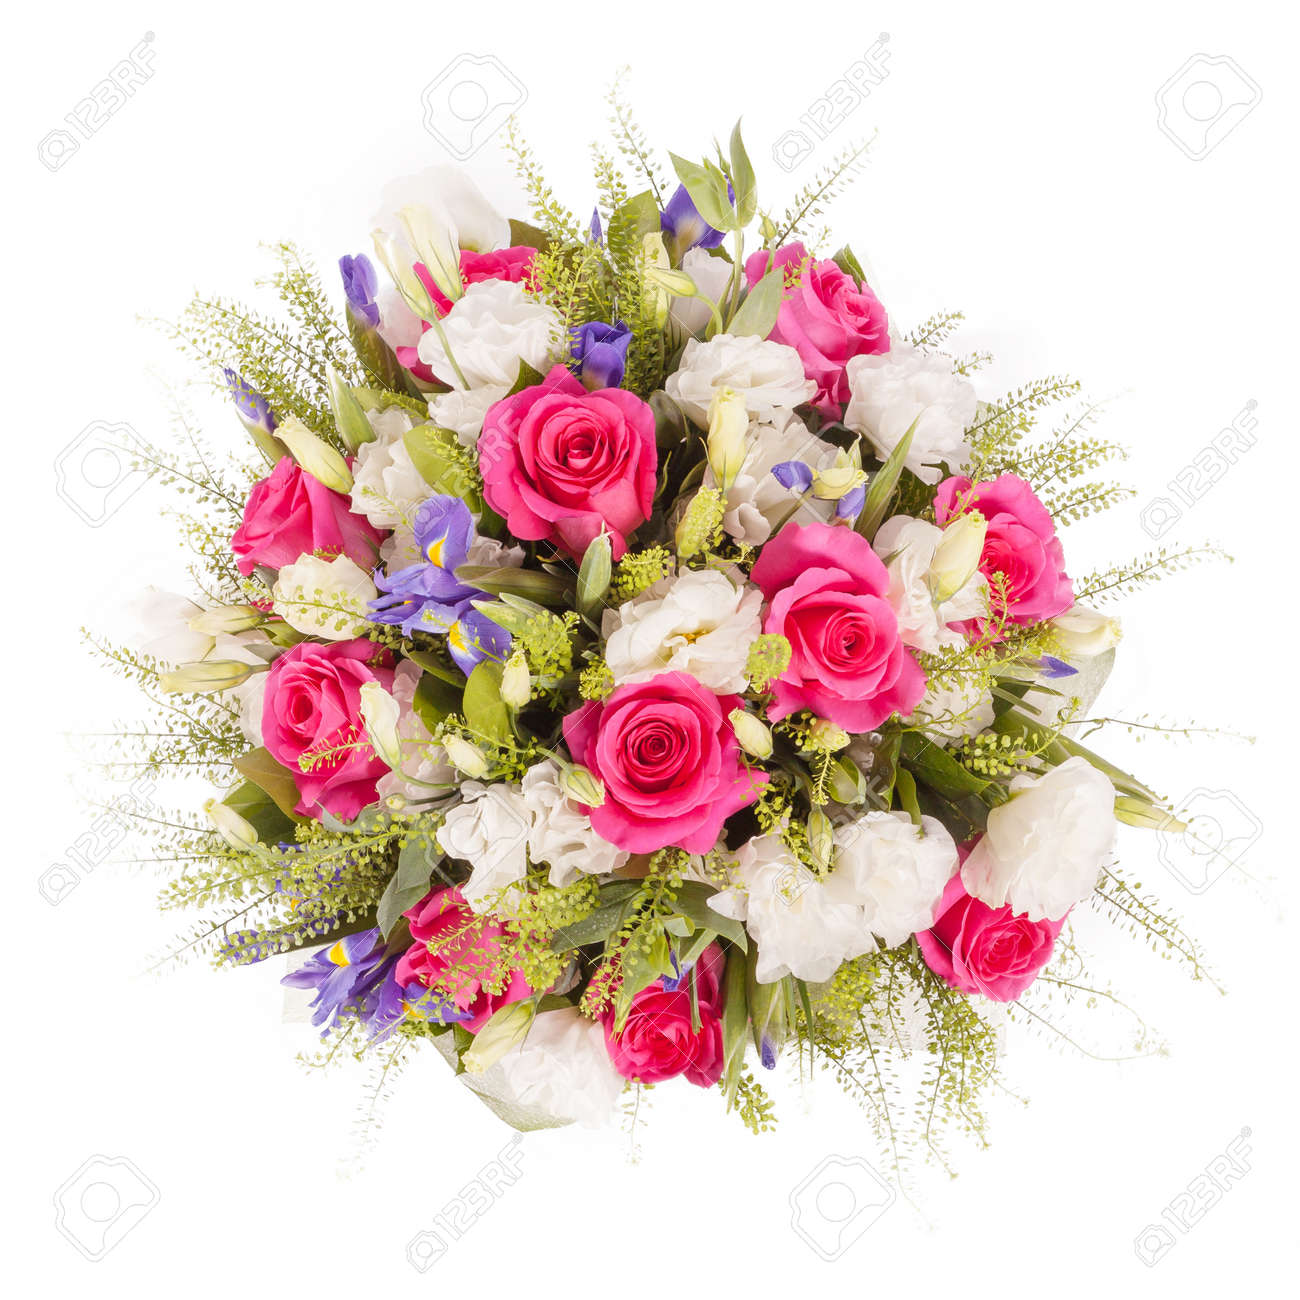 Bouquet of flowers top view isolated on white stock photo picture bouquet of flowers top view isolated on white stock photo 44114190 izmirmasajfo